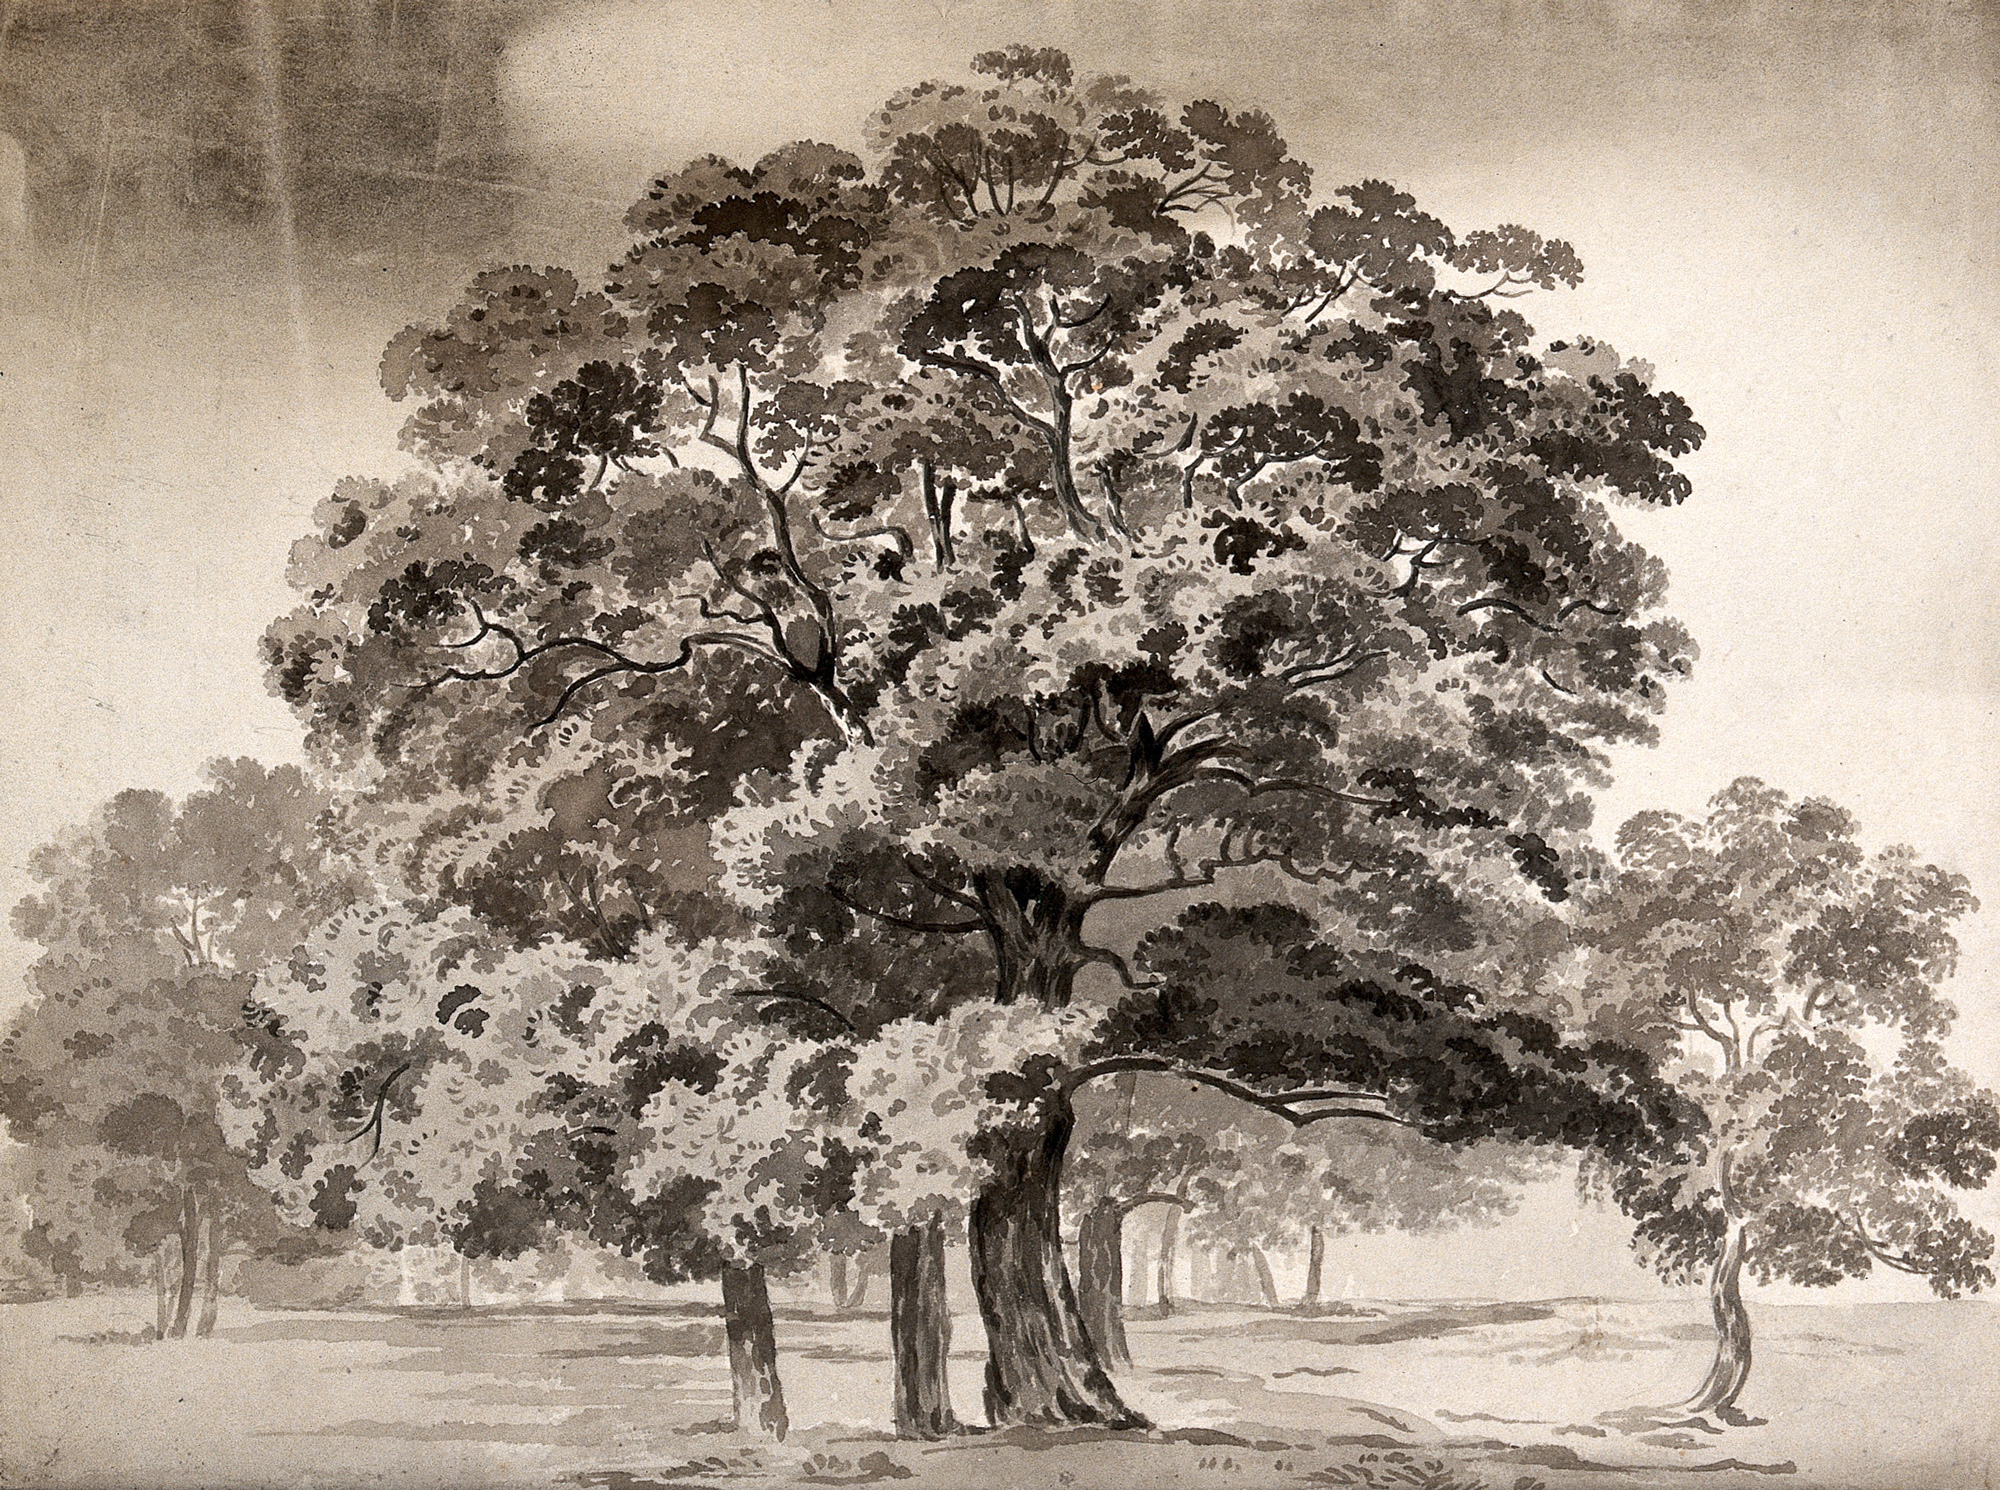 A_group_of_trees._Wash_drawing._Wellcome_V0043530_It Was A Sunlight Fearless Day By Herscho Duds